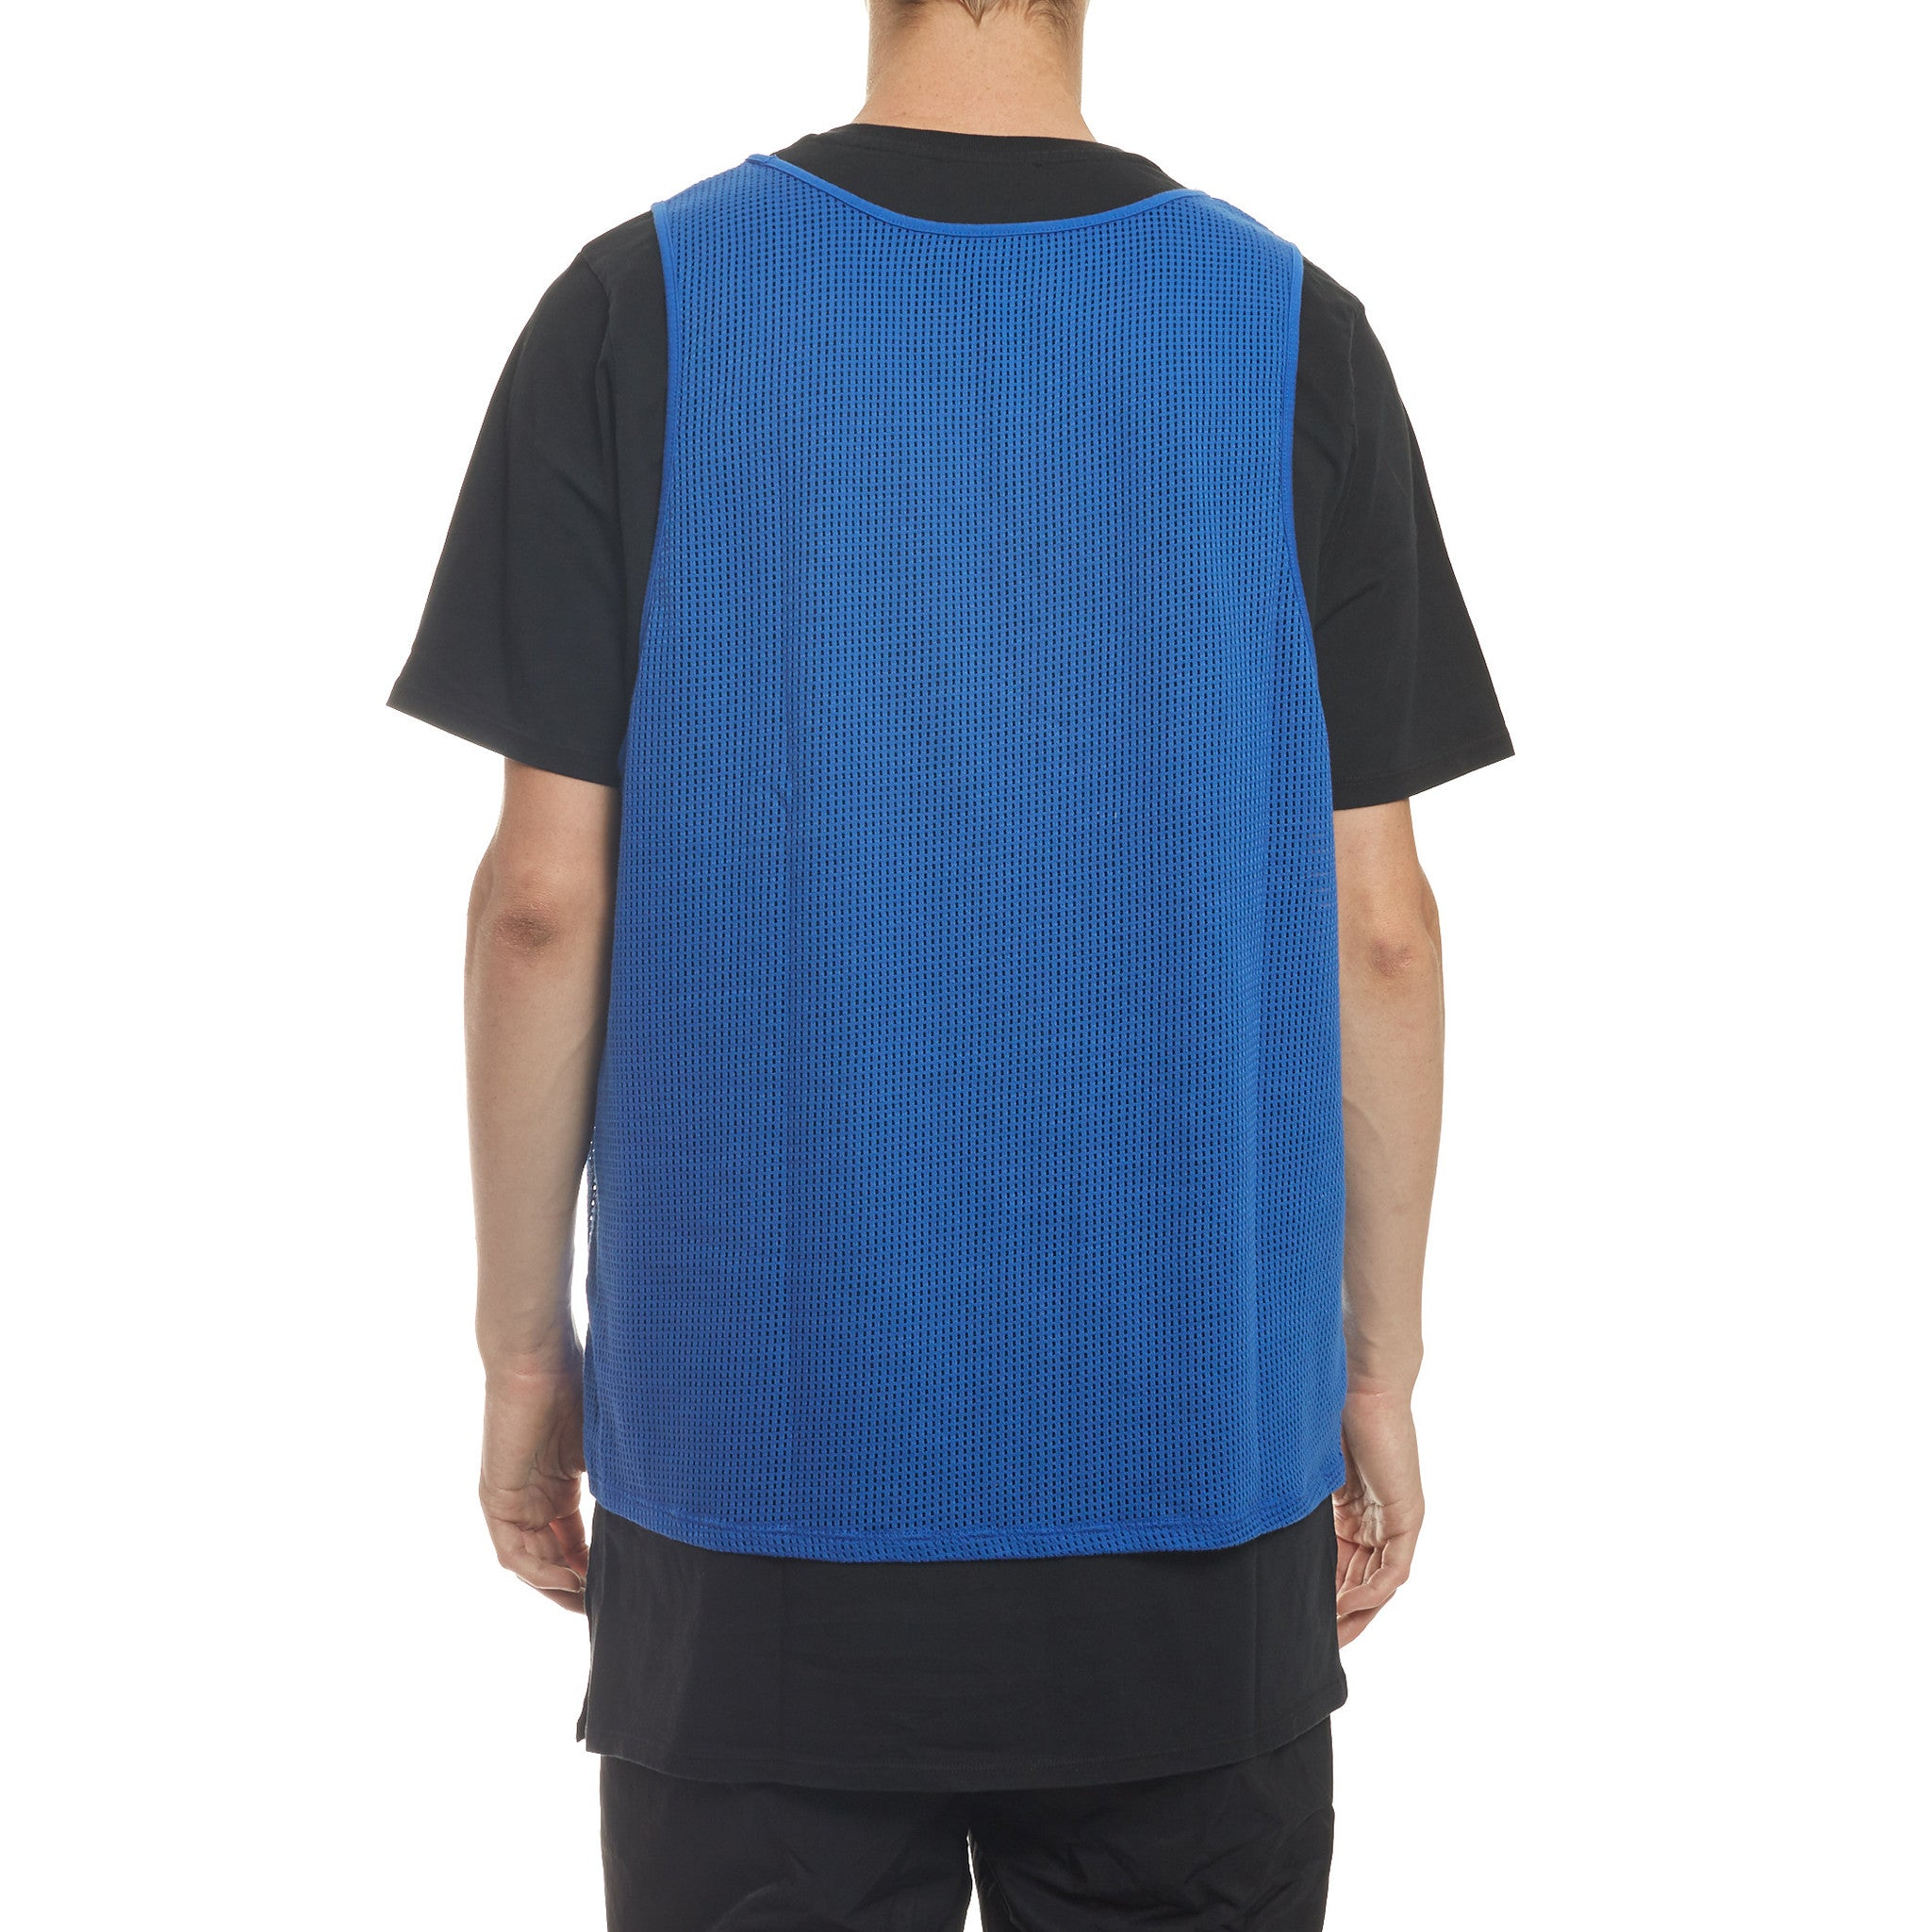 S/S Tee Mesh Slight Overlay